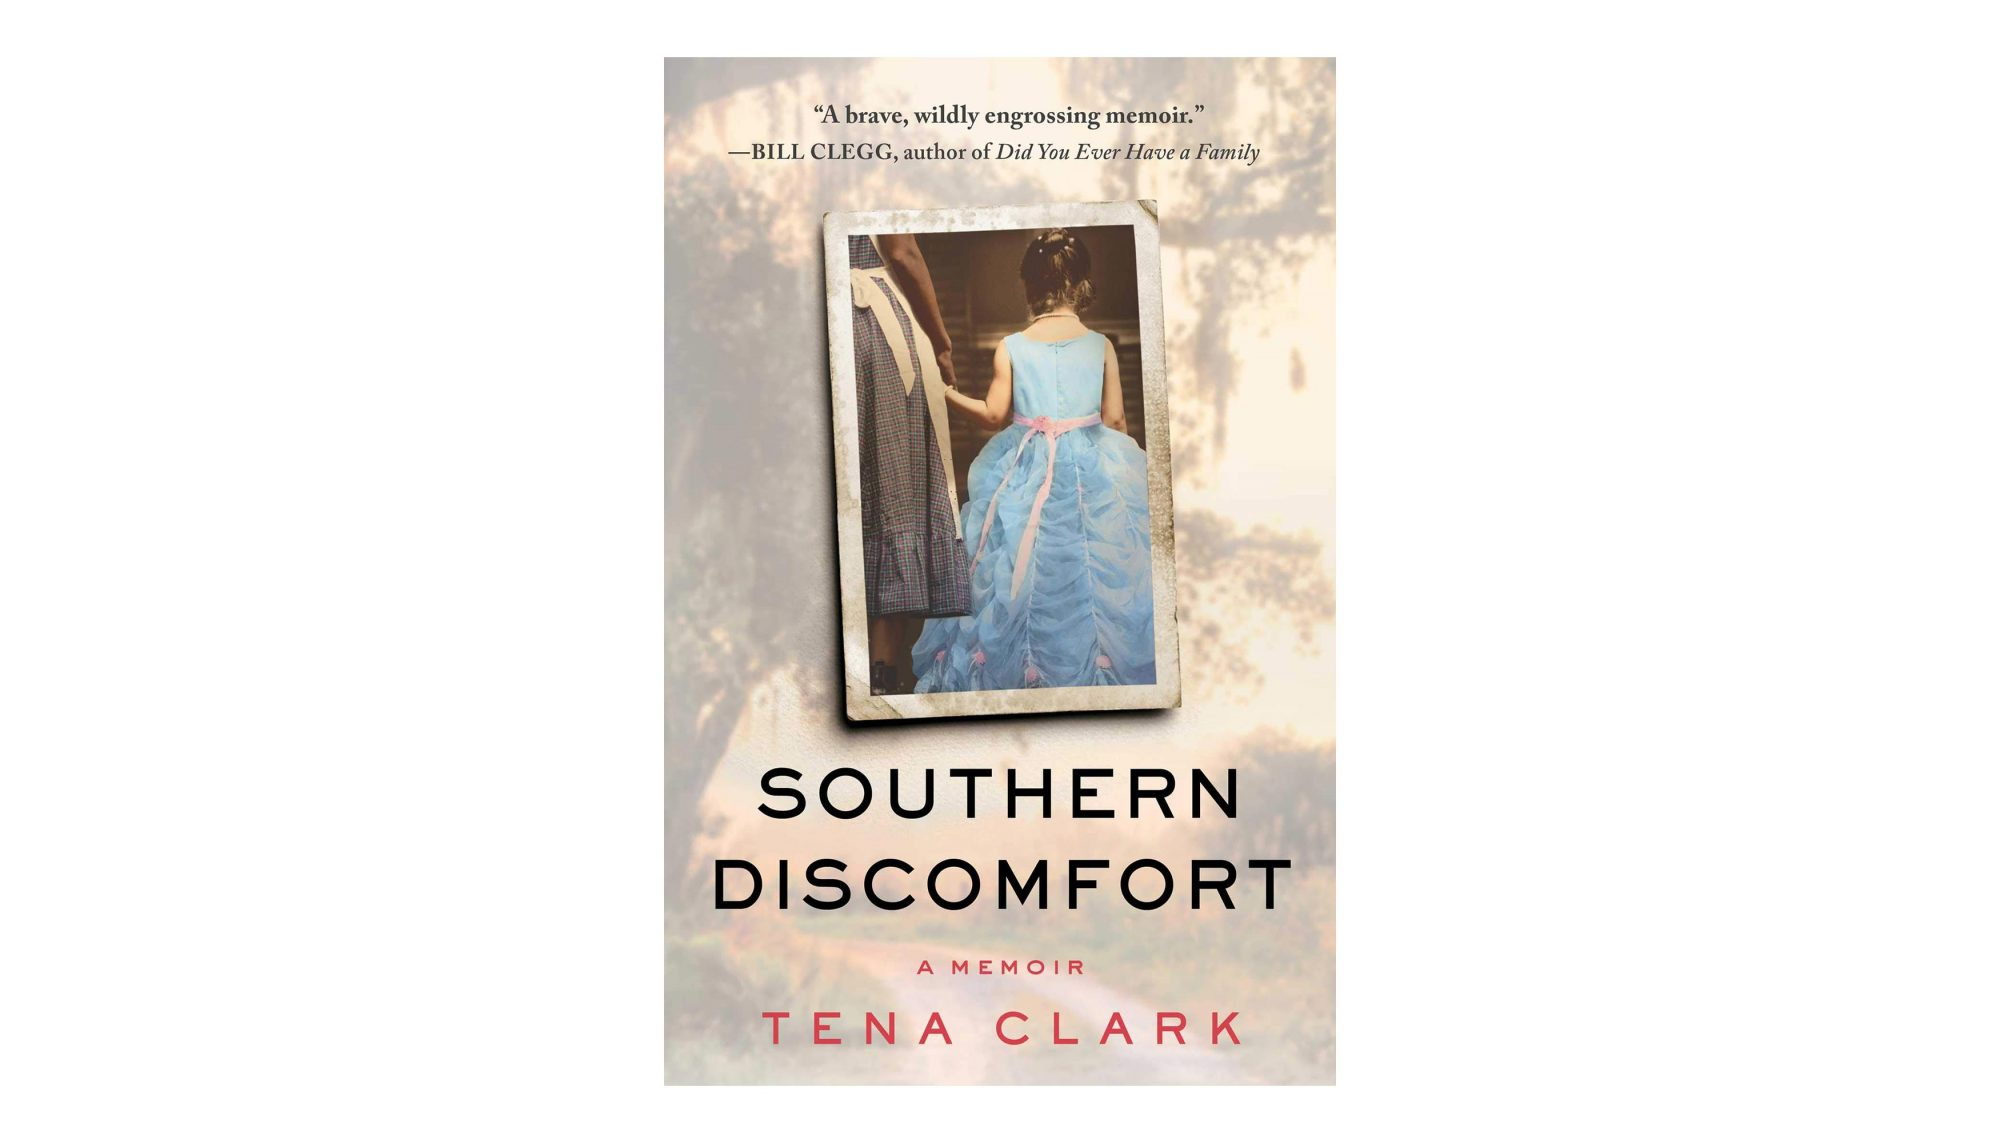 Best Books 2018 Southern Discomfort by Tena Clark